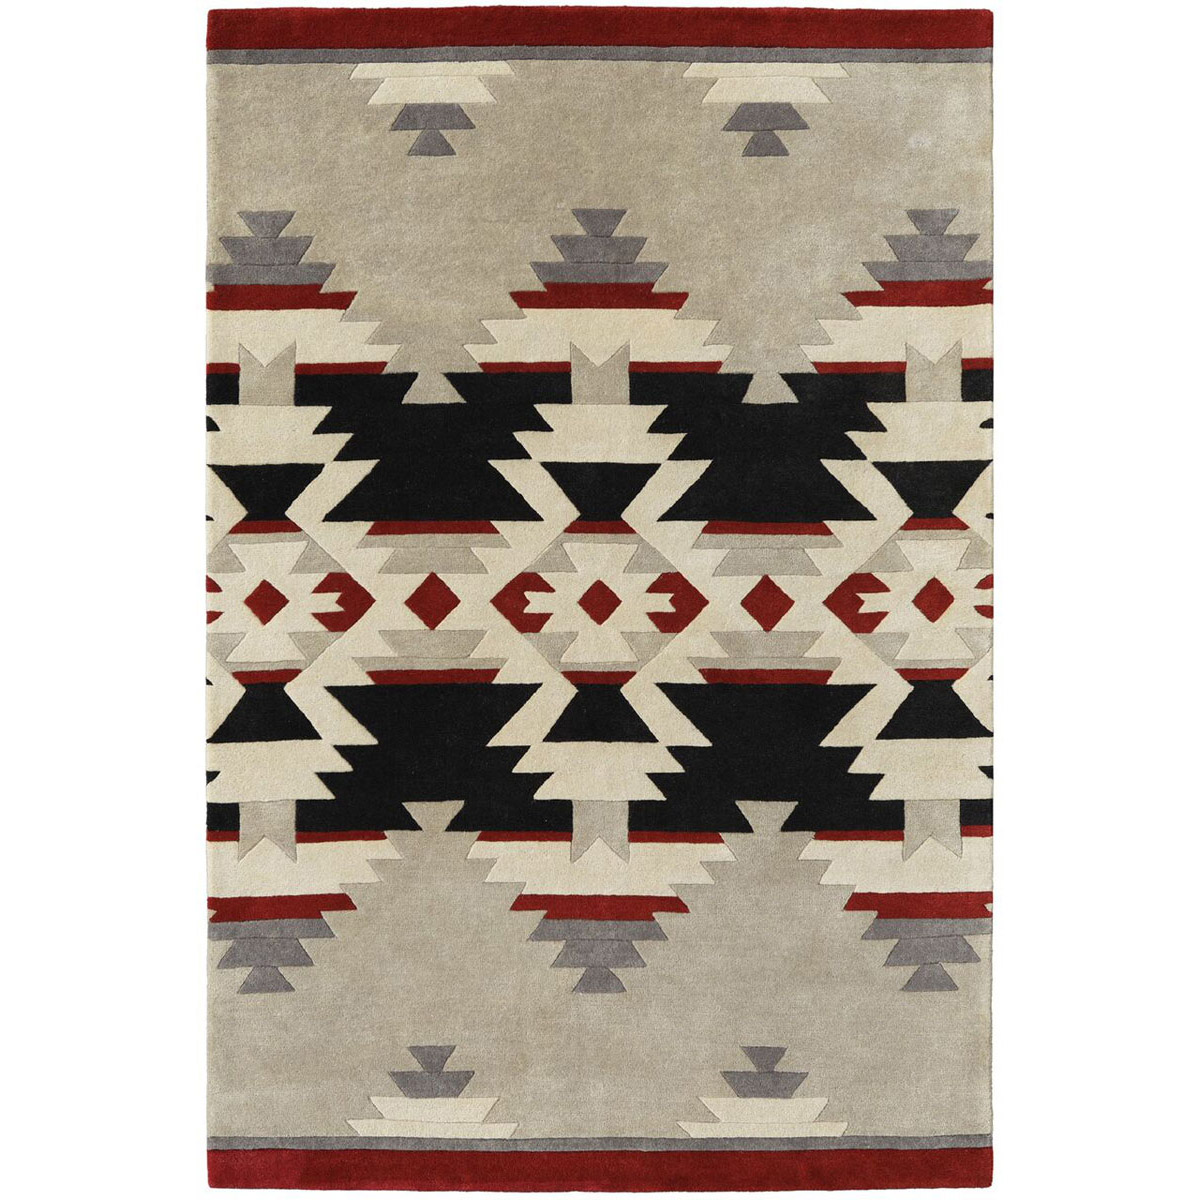 Mountain Majesty Rug - 6 x 9